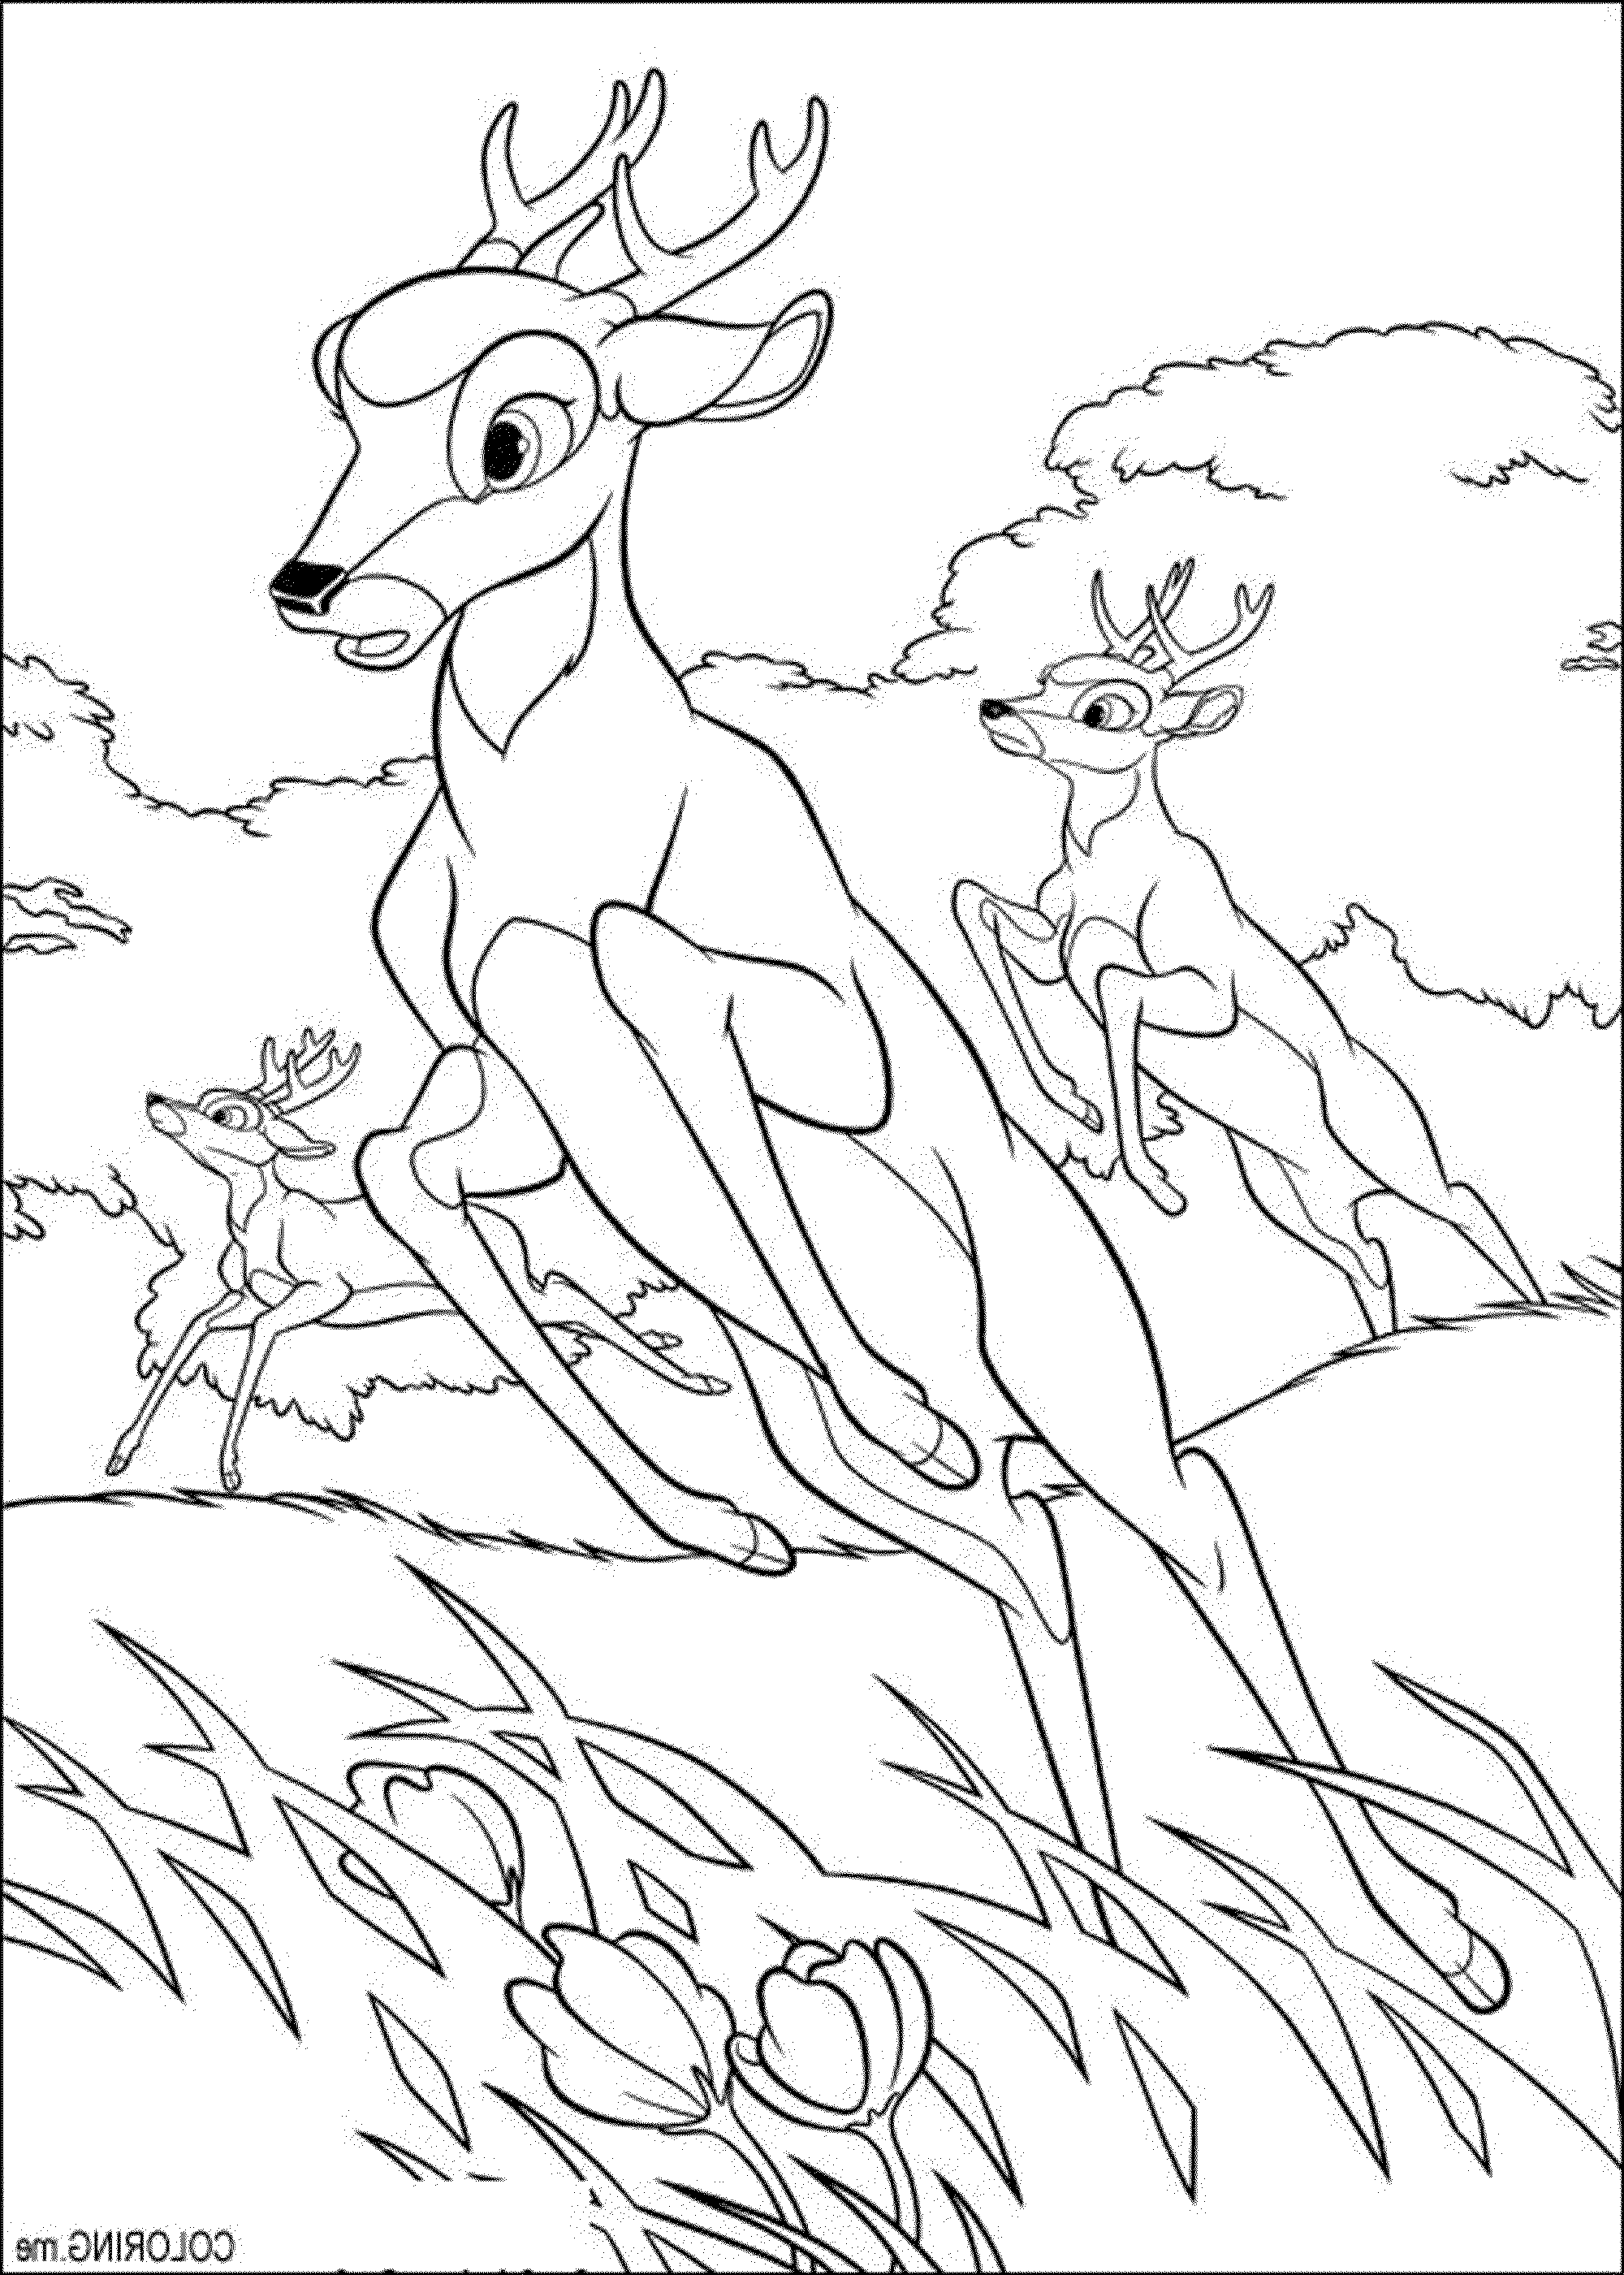 deer-hunting-coloring-pages | | BestAppsForKids.com